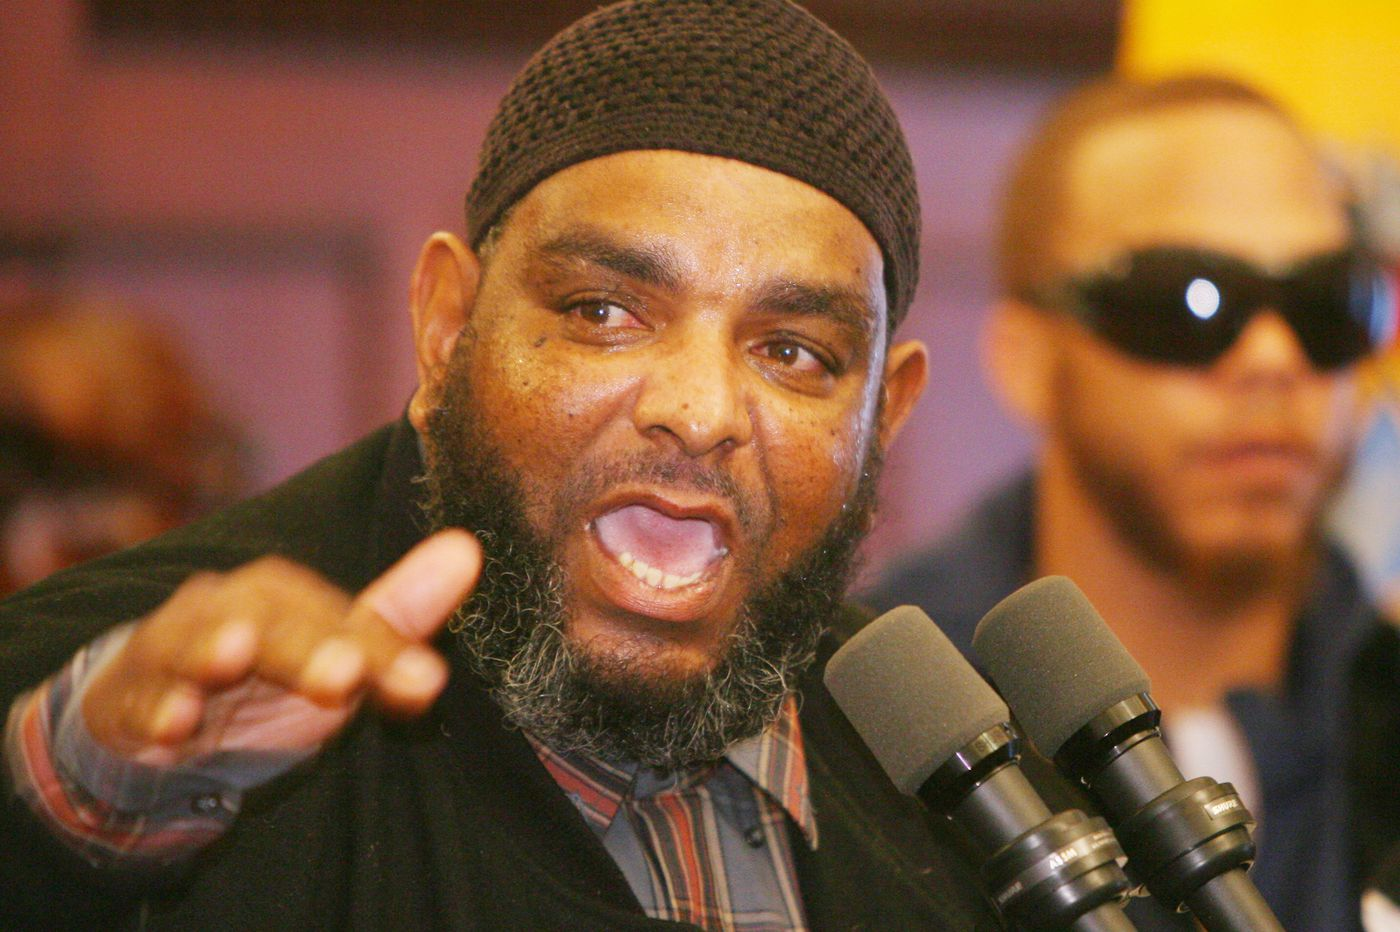 Malik Aziz, Philly activist who showed ex-prisoners they can be change agents, dies at 66